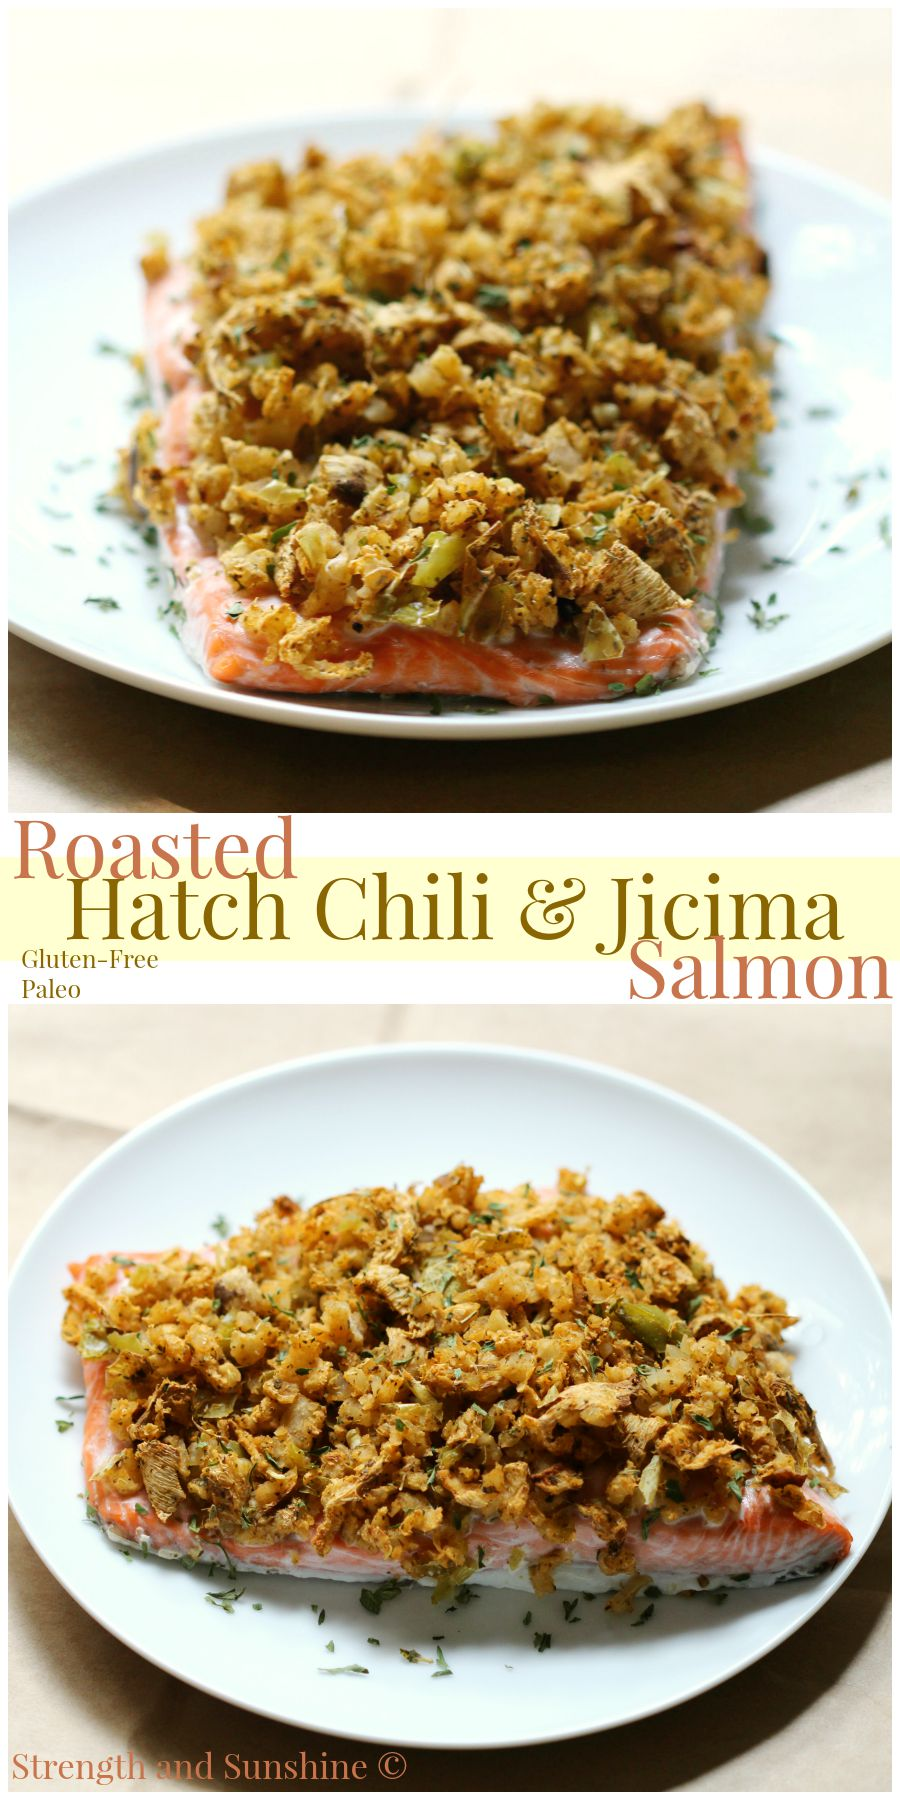 Roasted Hatch Chili & Jicima Salmon | Strength and Sunshine @RebeccaGF666 Robust and spicy hatch chilis, roasted and paired with sweet jicima, make the perfect topping for rich and buttery salmon. This gluten-free and paleo recipe for salmon will have you craving dinnertime!